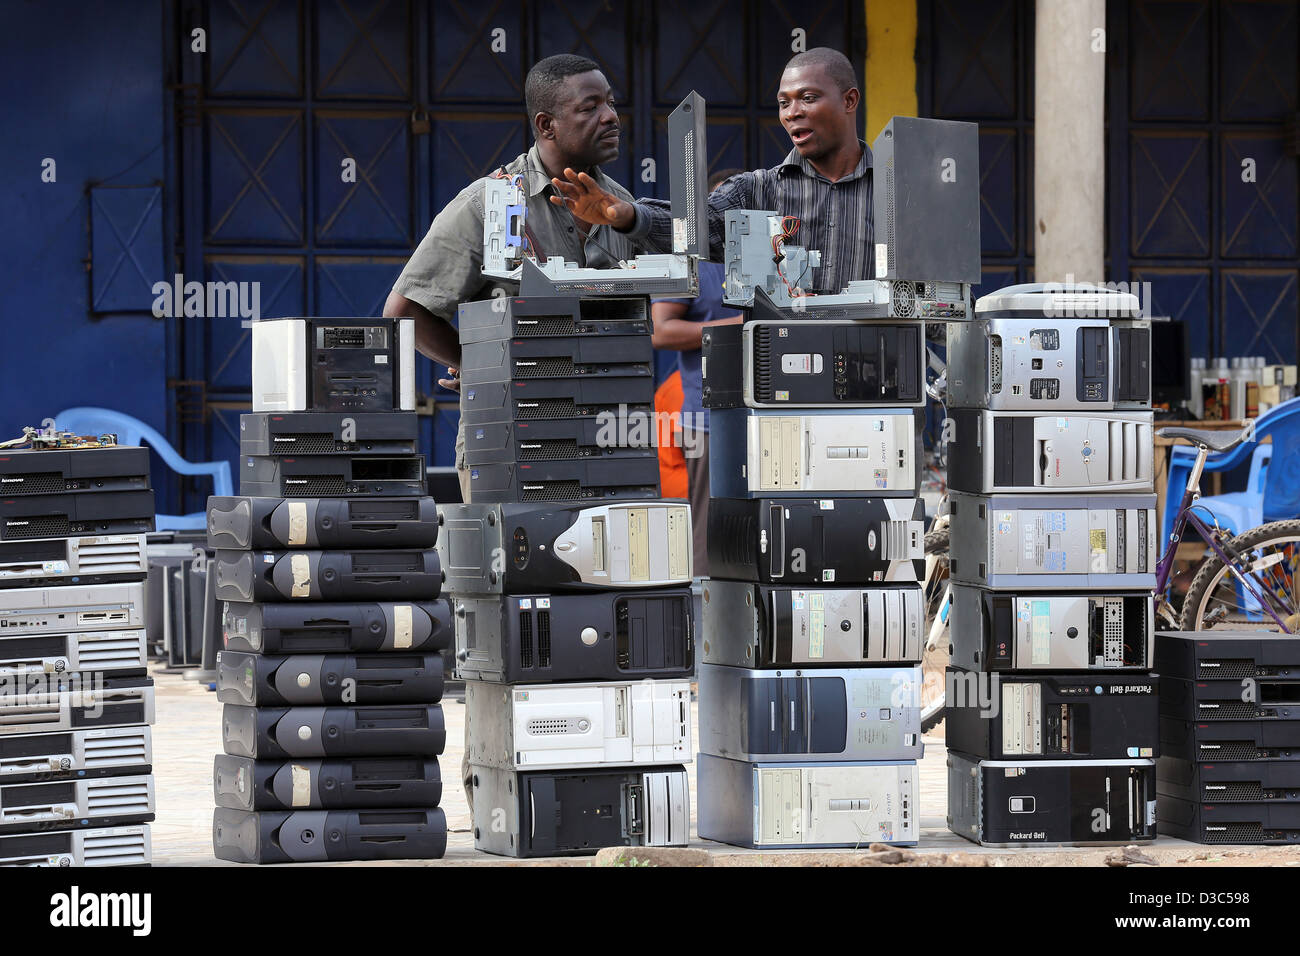 second hand used computers from Europe and USA for sale at a roadside shop in Accra, Ghana - Stock Image